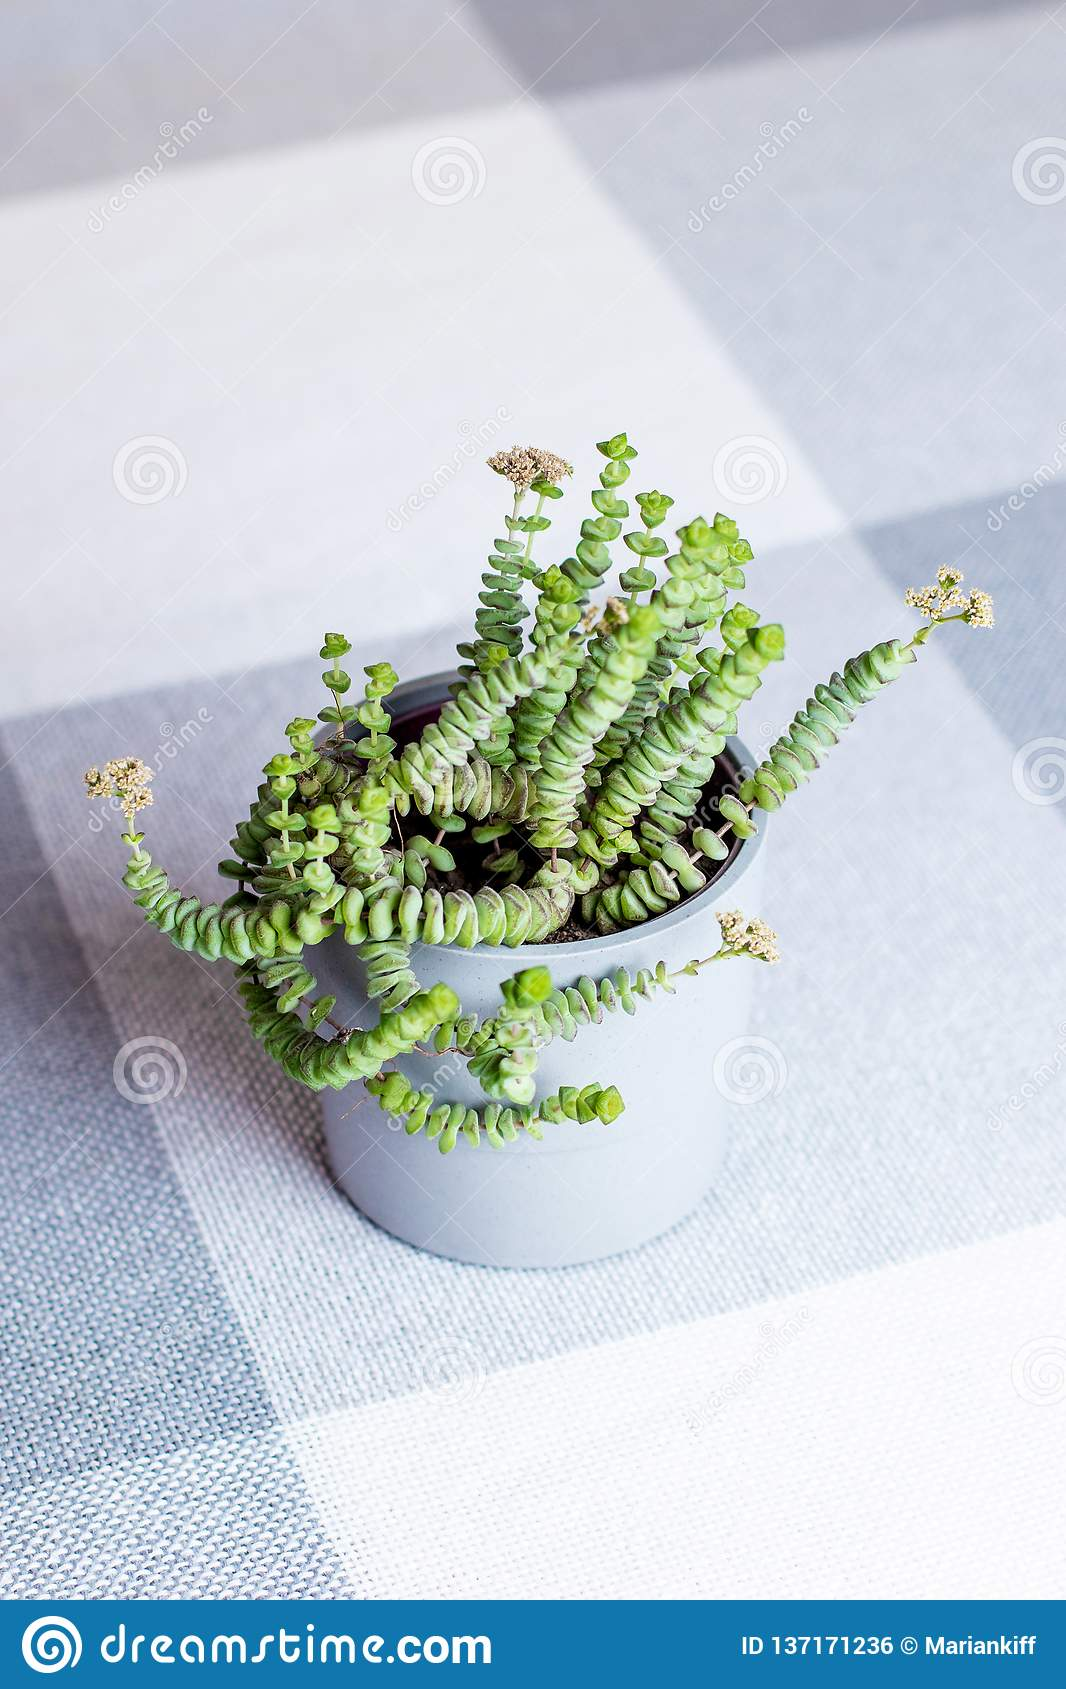 Green flower, Crassula Nealeana, succulent plant with string type leaves in a grey pot, indoors